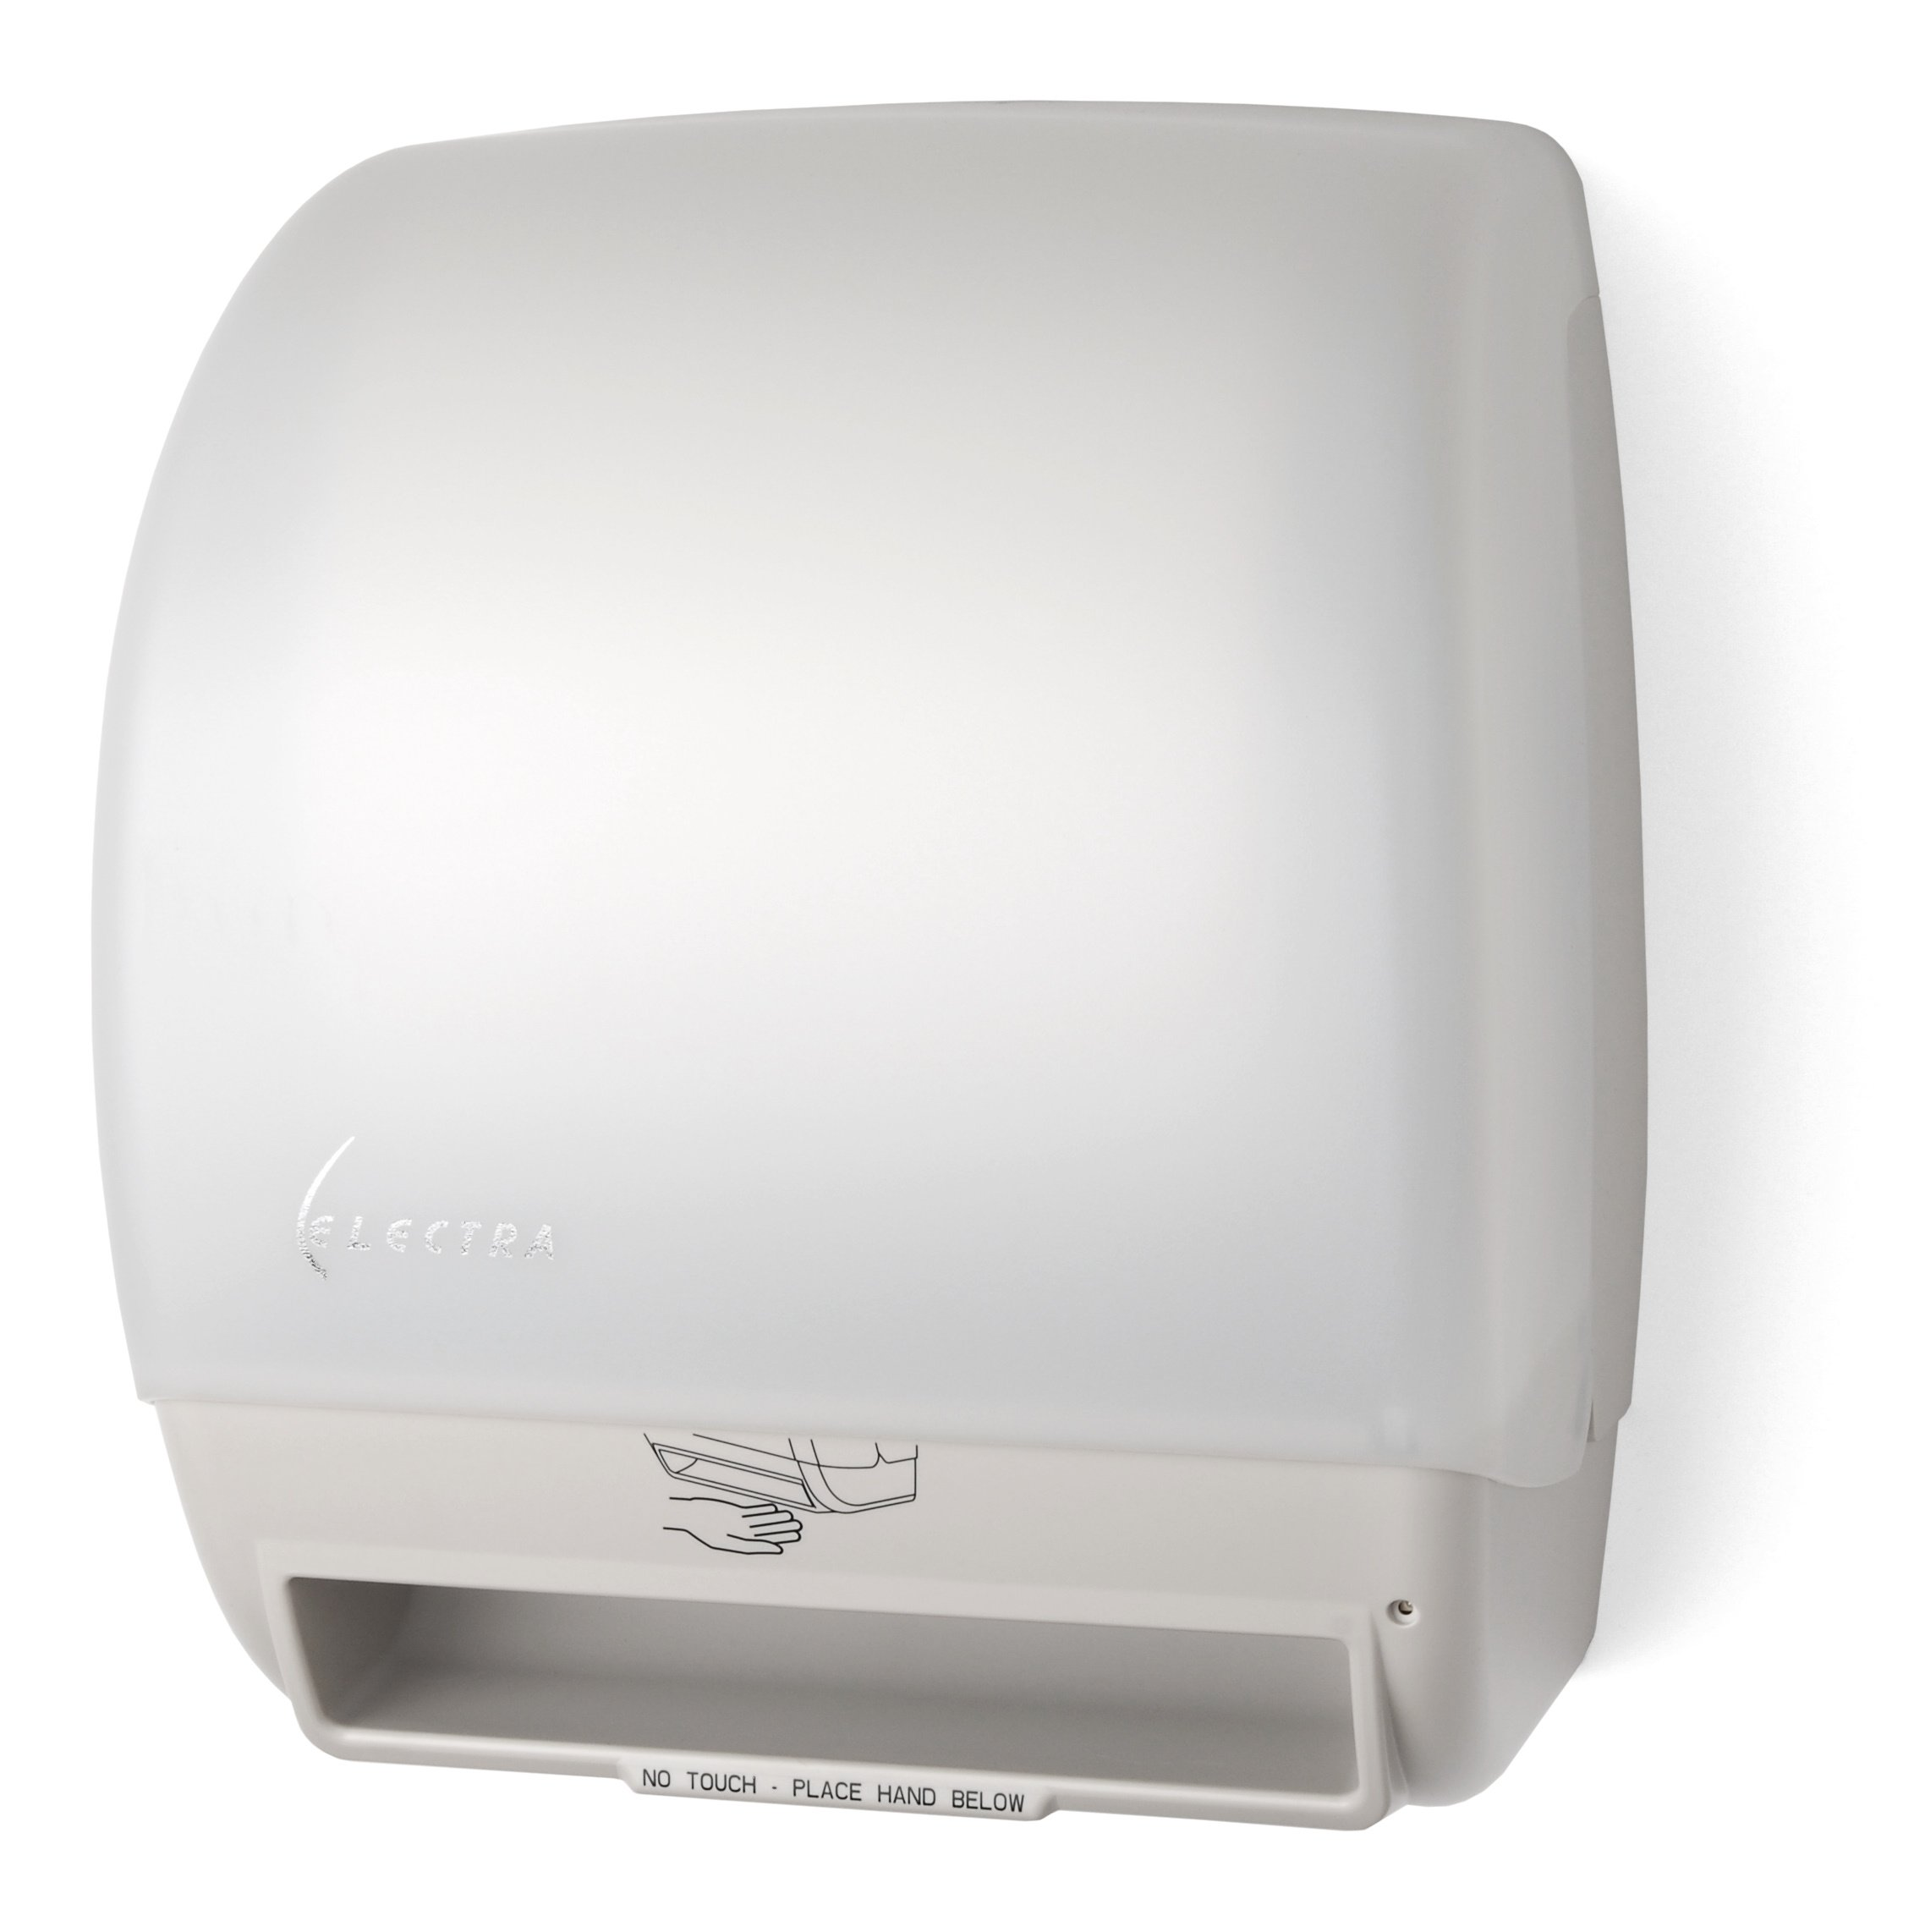 Palmer Fixture TD0245-03P Electra Touchless Roll Towel Dispenser, White Translucent